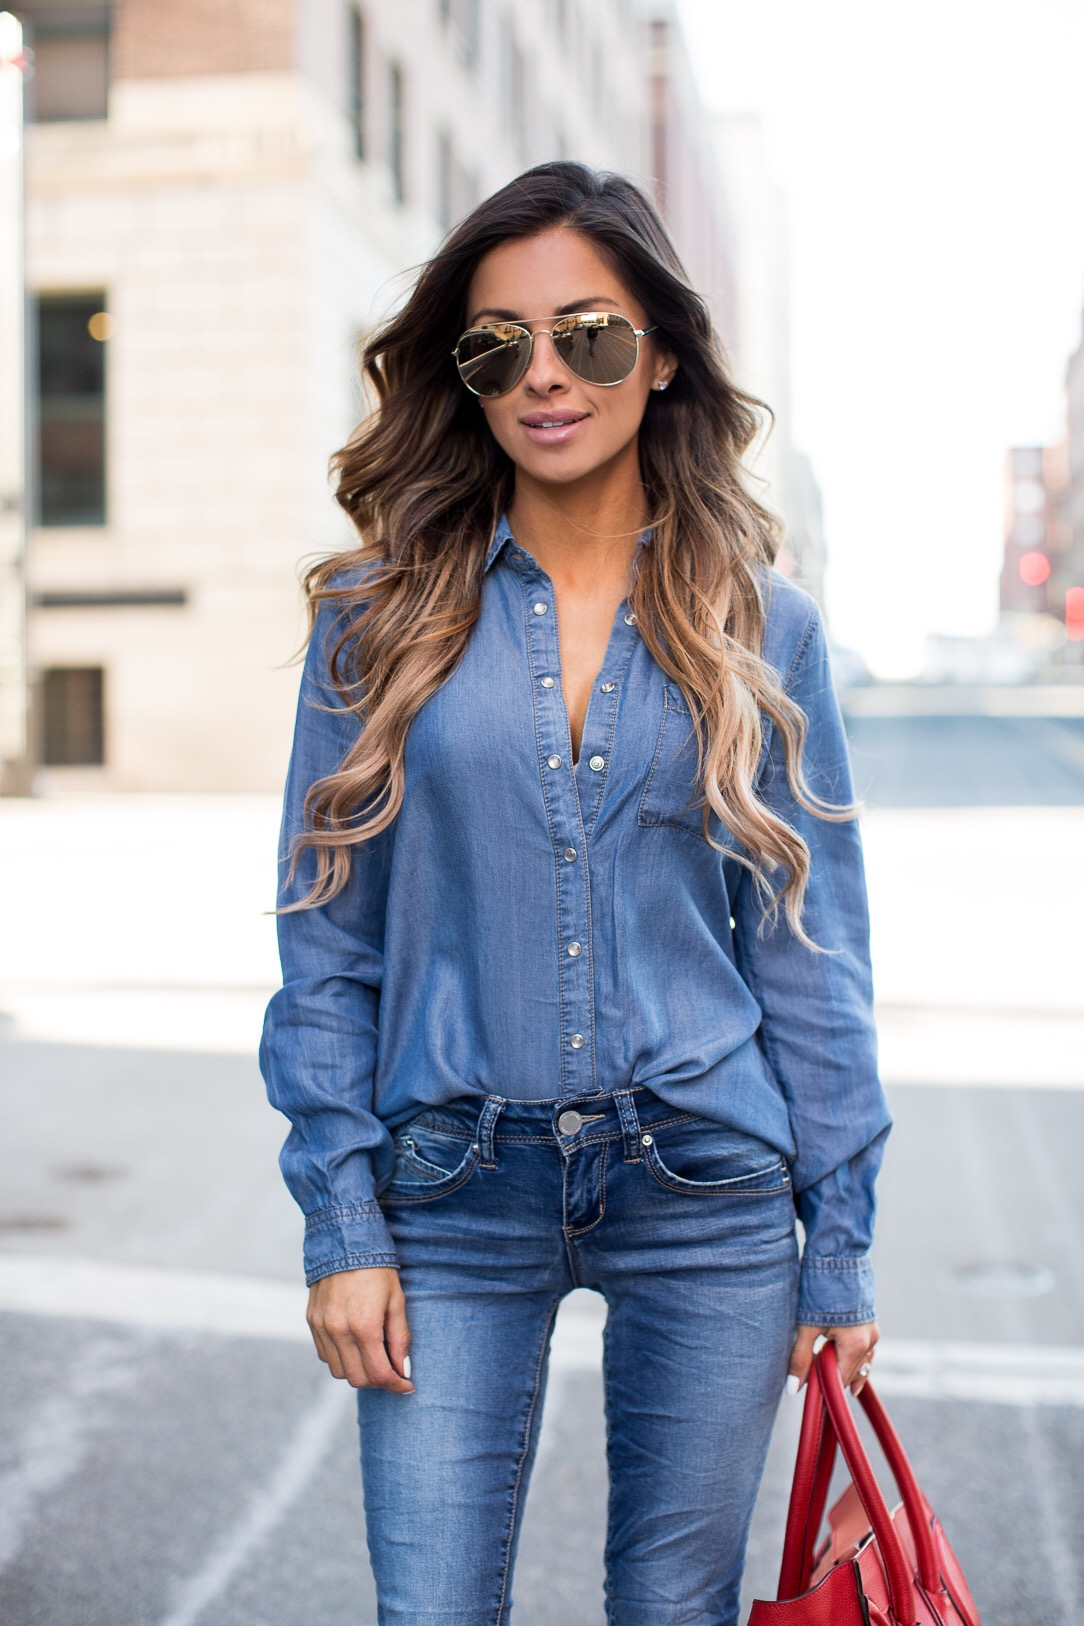 The Most Flattering Jeans With Ymi Jeans Mia Mia Mine